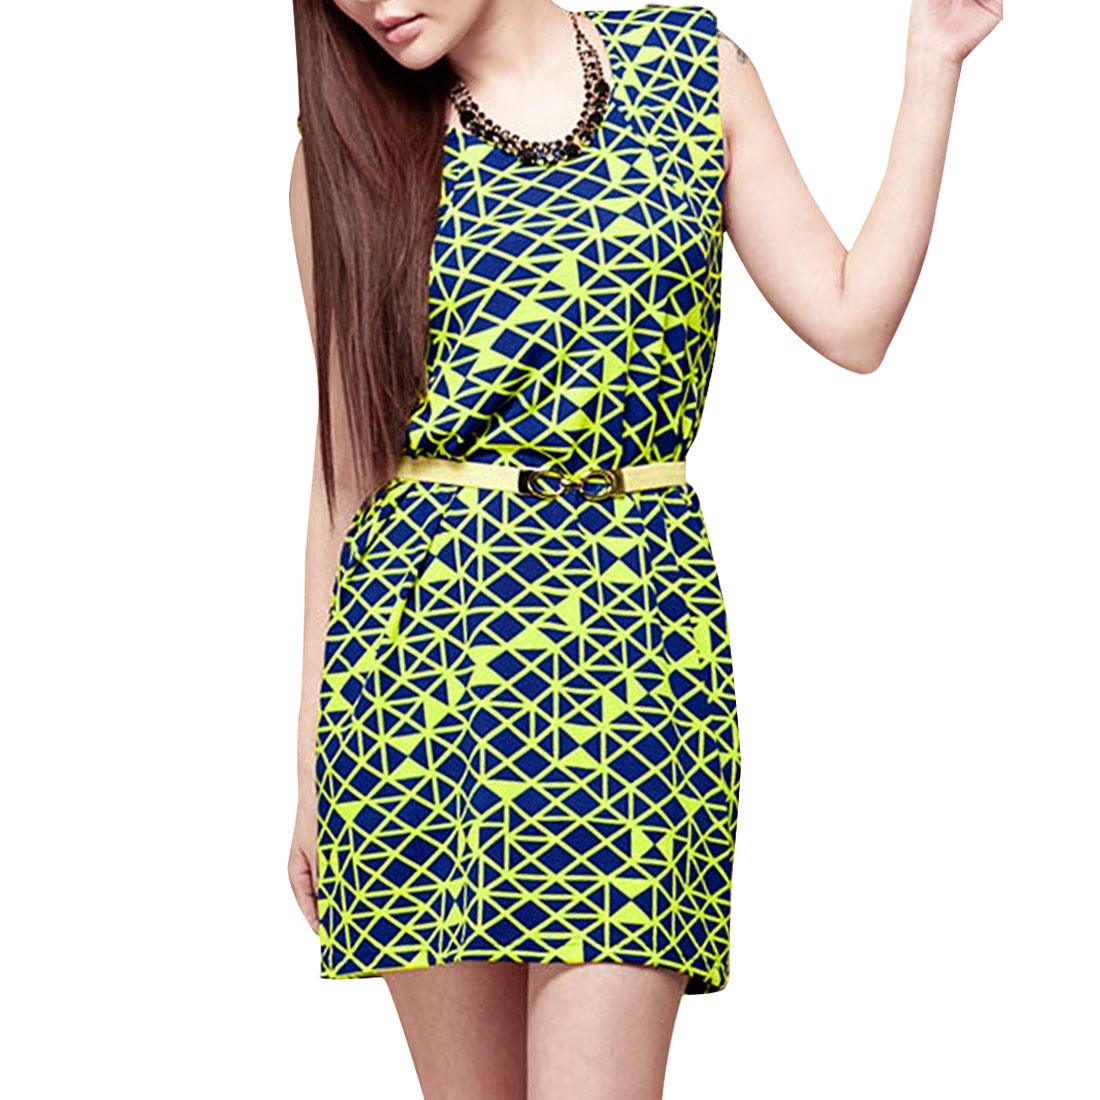 Ladies Color Block Round Neck Sleeveless Design Two Tone Dress Lime Blue S